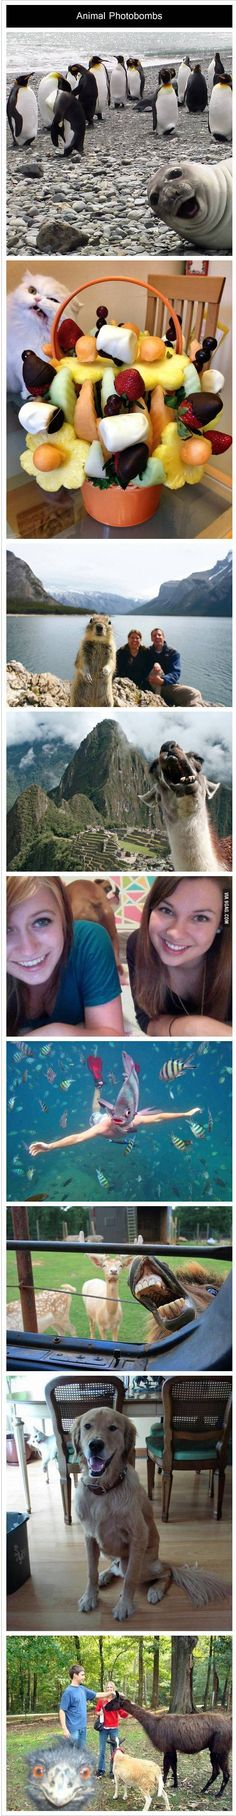 Animal photobombs - This made me laugh a lot more than it probably should have. But that could just be the insomnia talking...